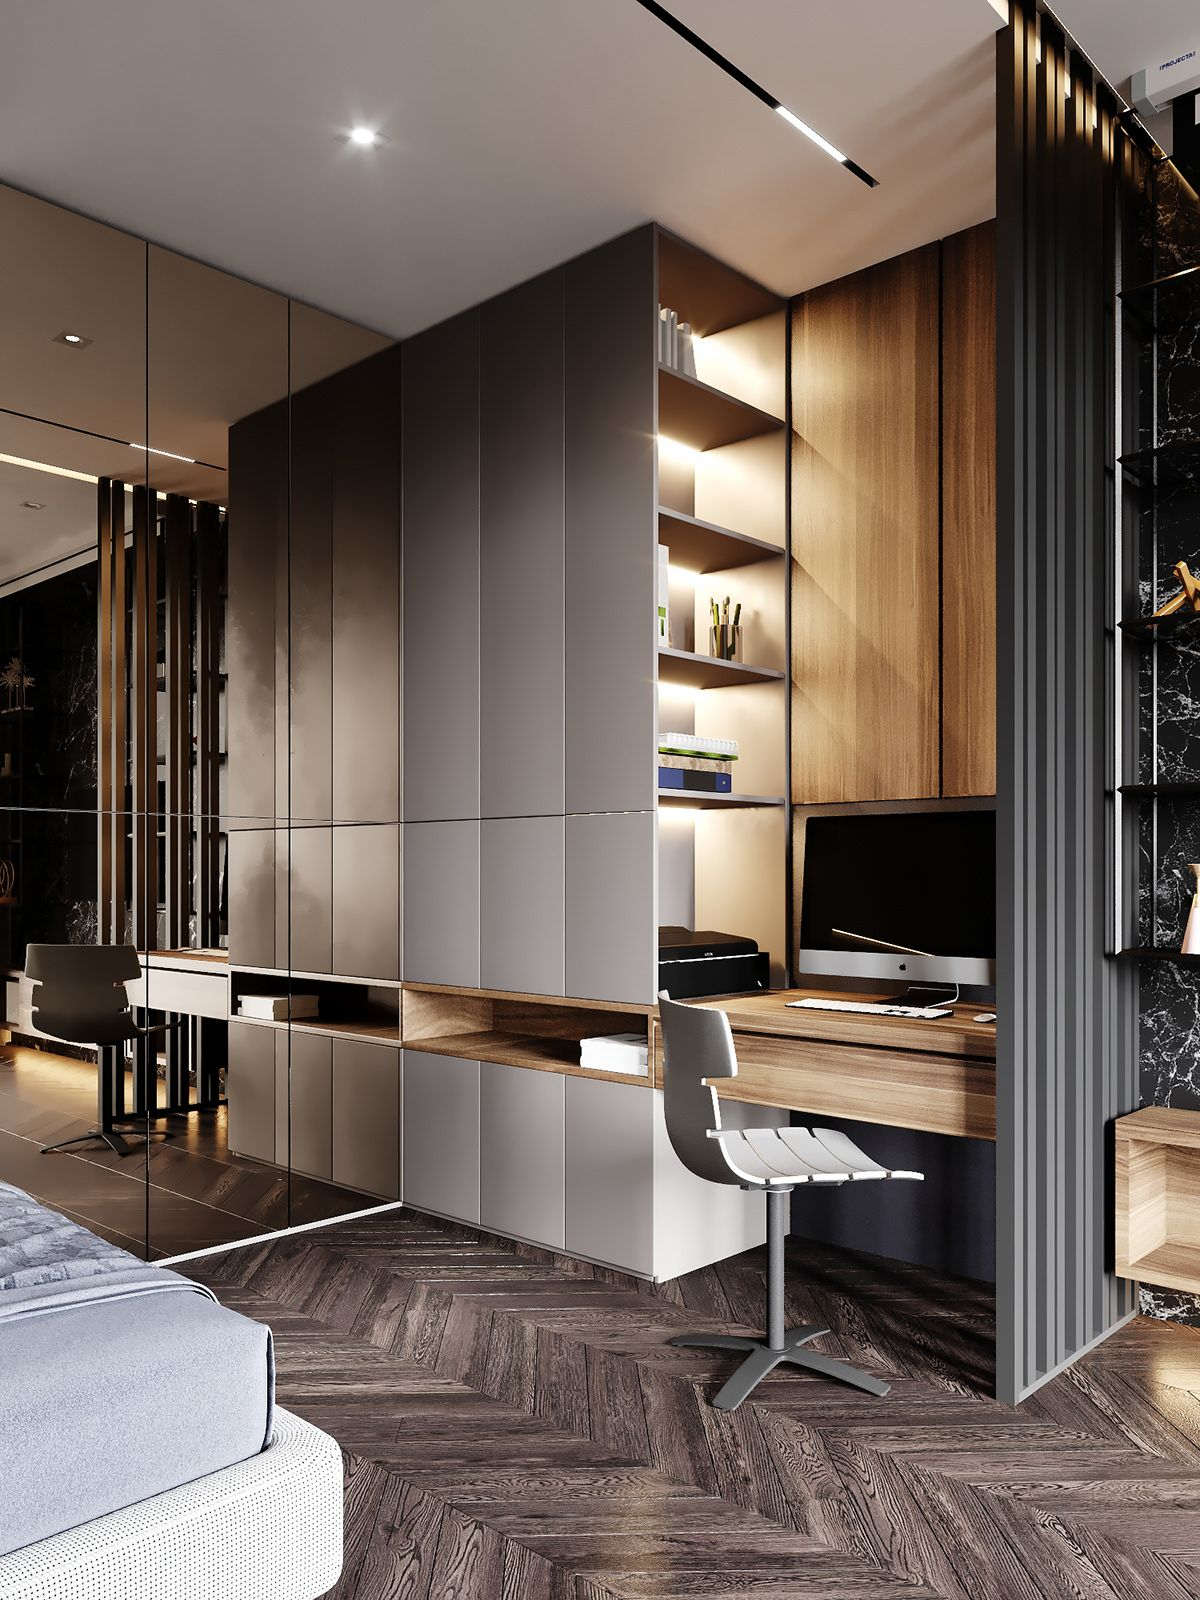 Hotel Room Designs: INFINITY On Behance